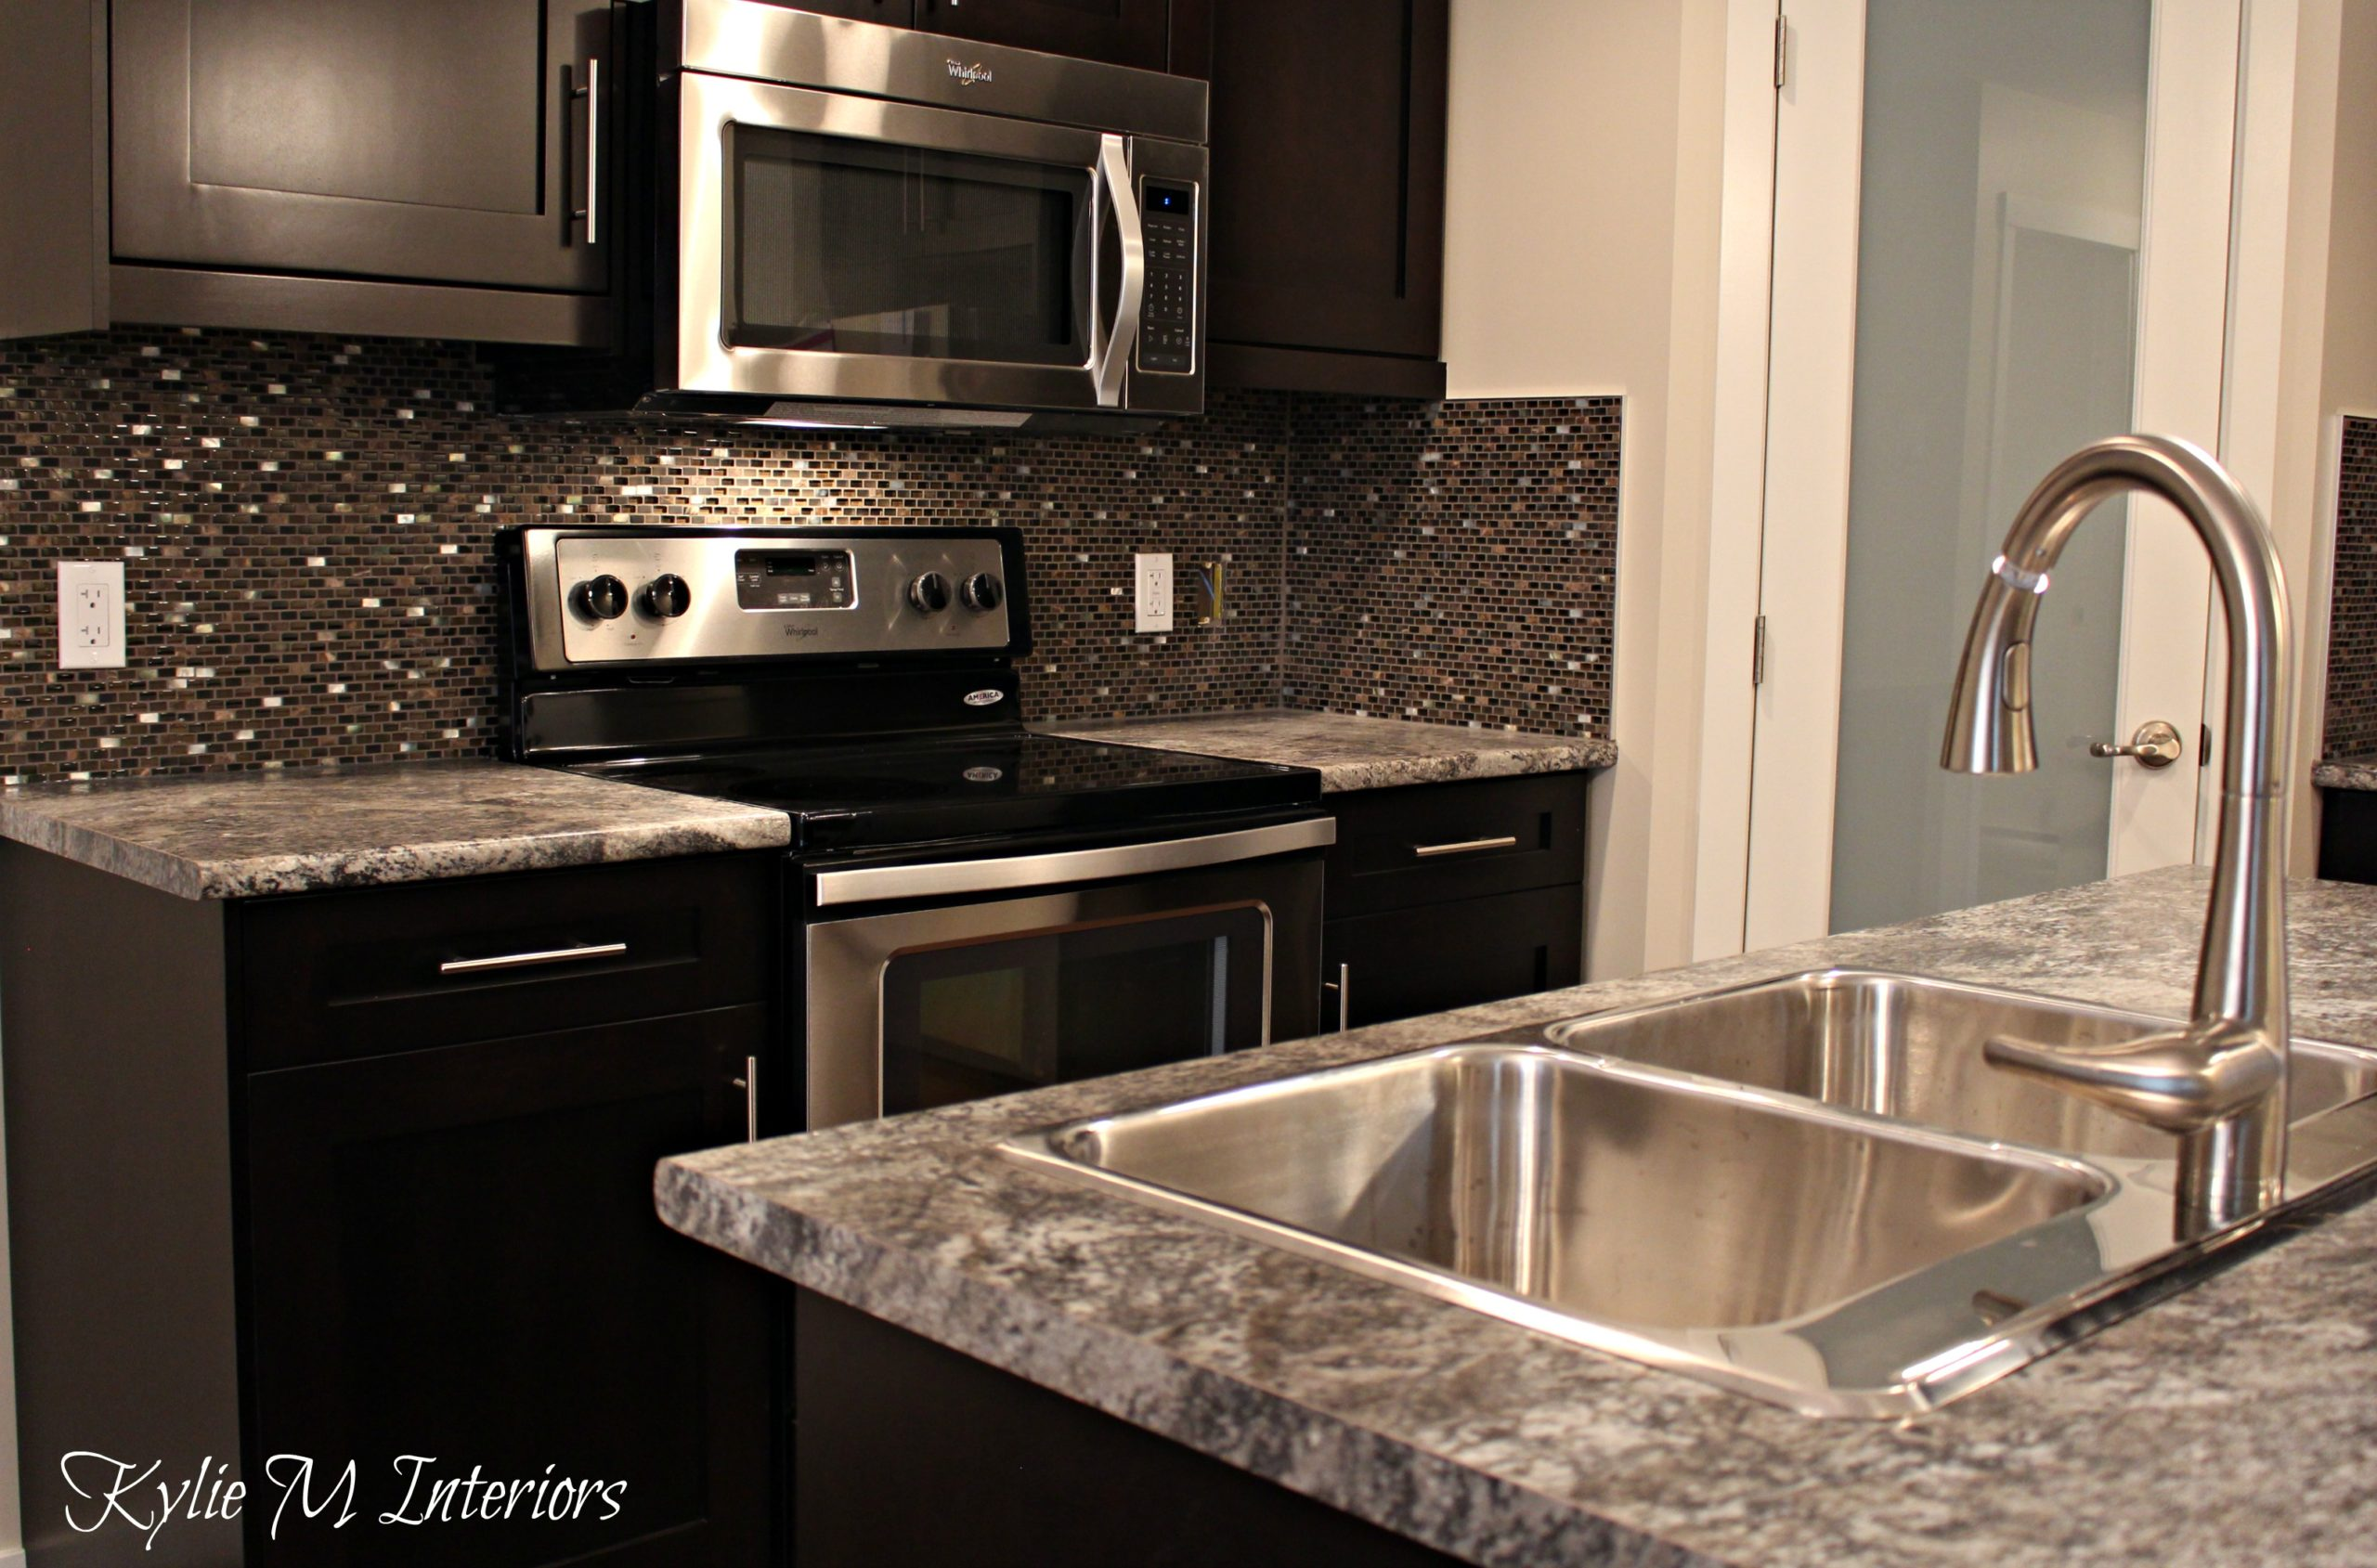 Laminate Kitchen Backsplash Harold Pionite Laminate Countertop With Glass Mosaic